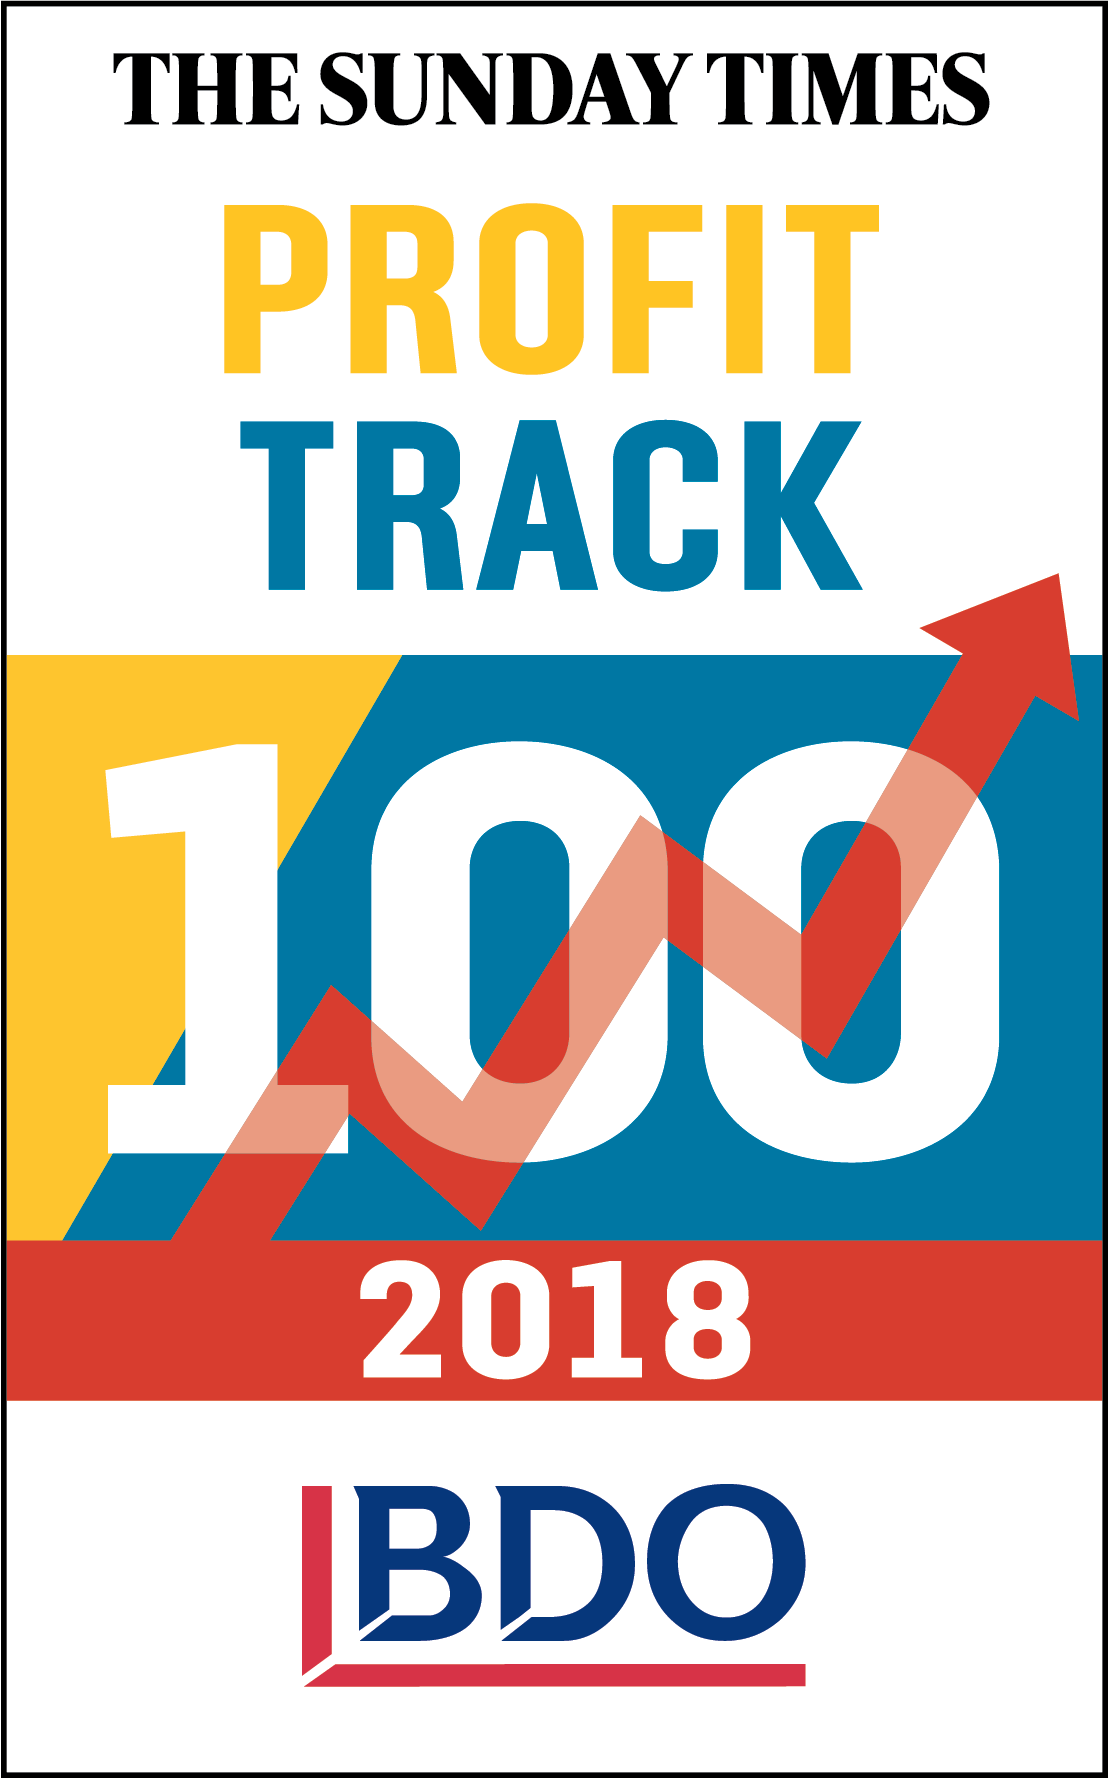 activpayroll recognised in Sunday Times BDO Profit Track 100